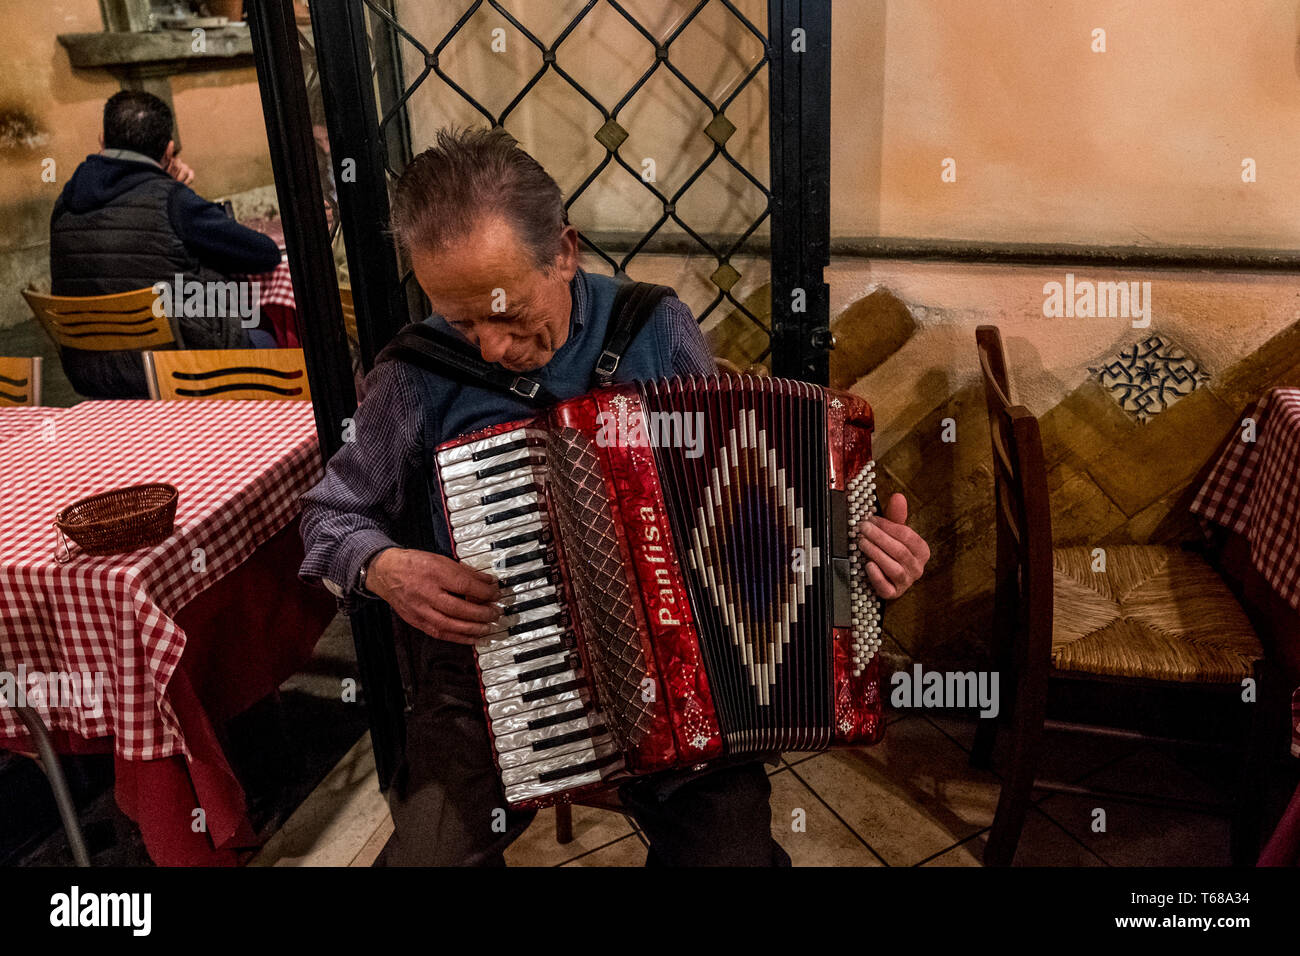 Playing music with an accordion for the tourists in a restaurant in Trastevere neighborhood - Stock Image